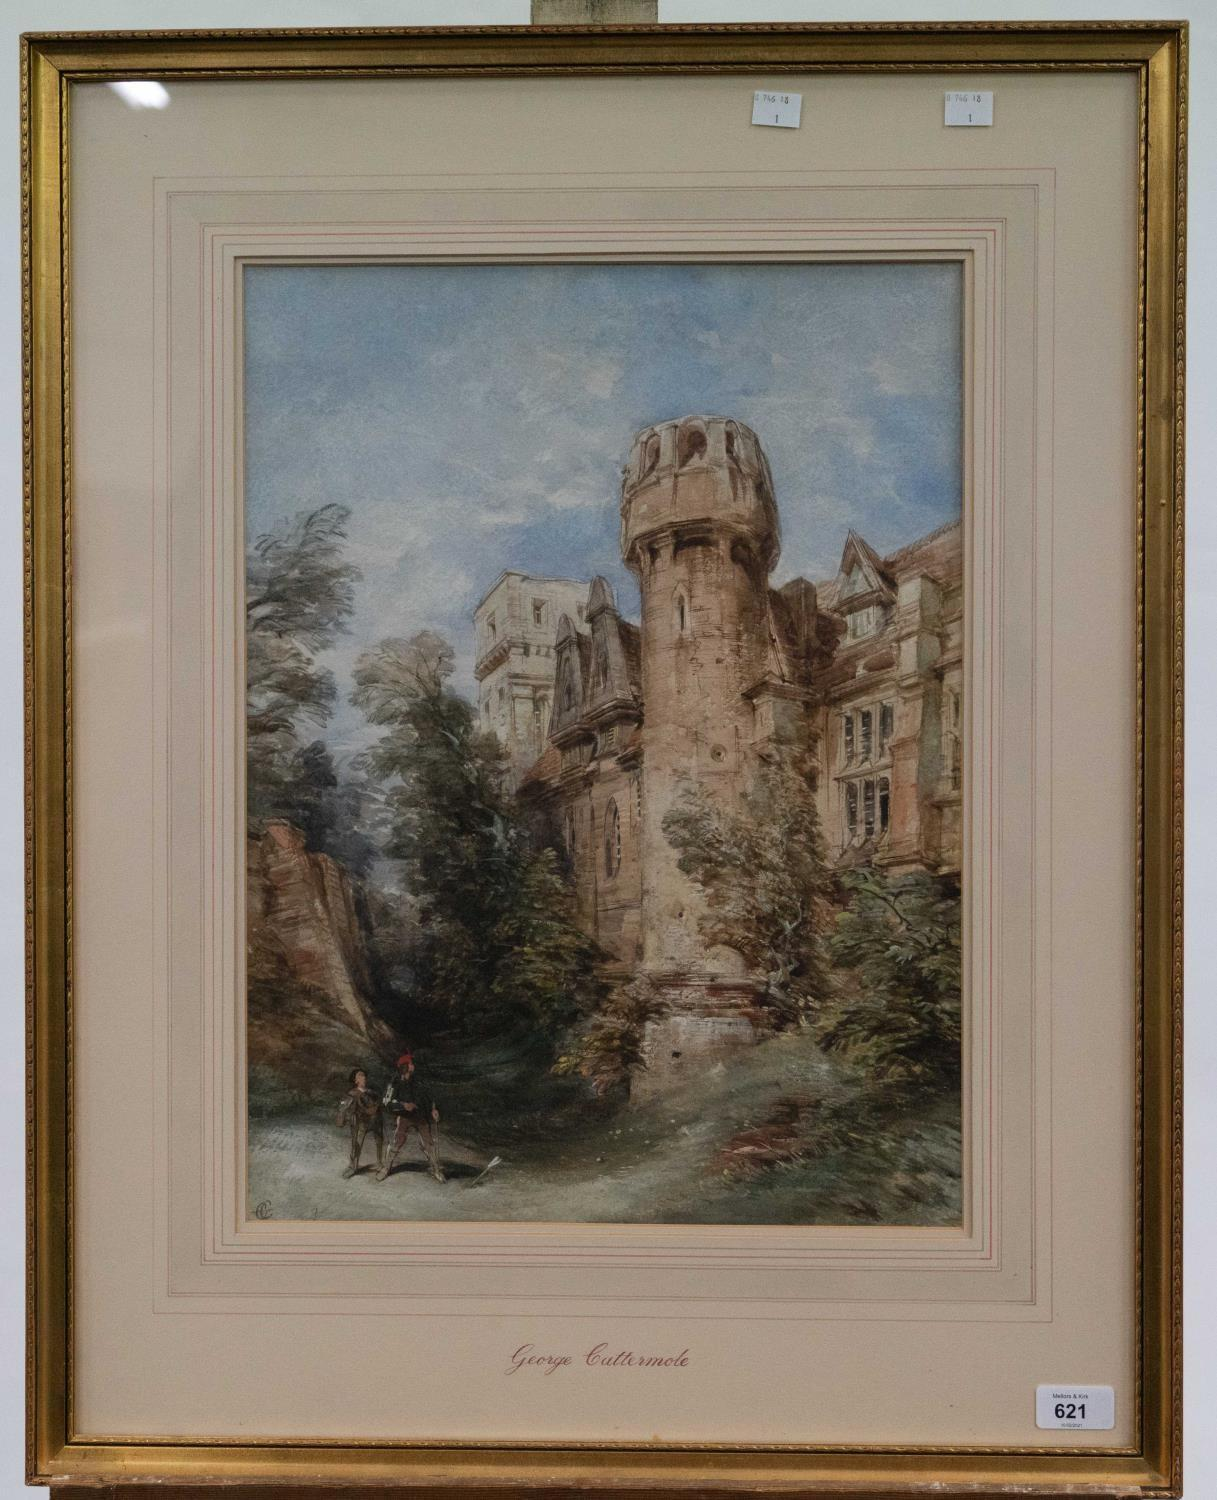 GEORGE CATTERMOLE, RWS (1800-1868) - ARCHER BEFORE A FORTIFIED MANOR HOUSE, SIGNED WITH INITIALS, - Image 2 of 3